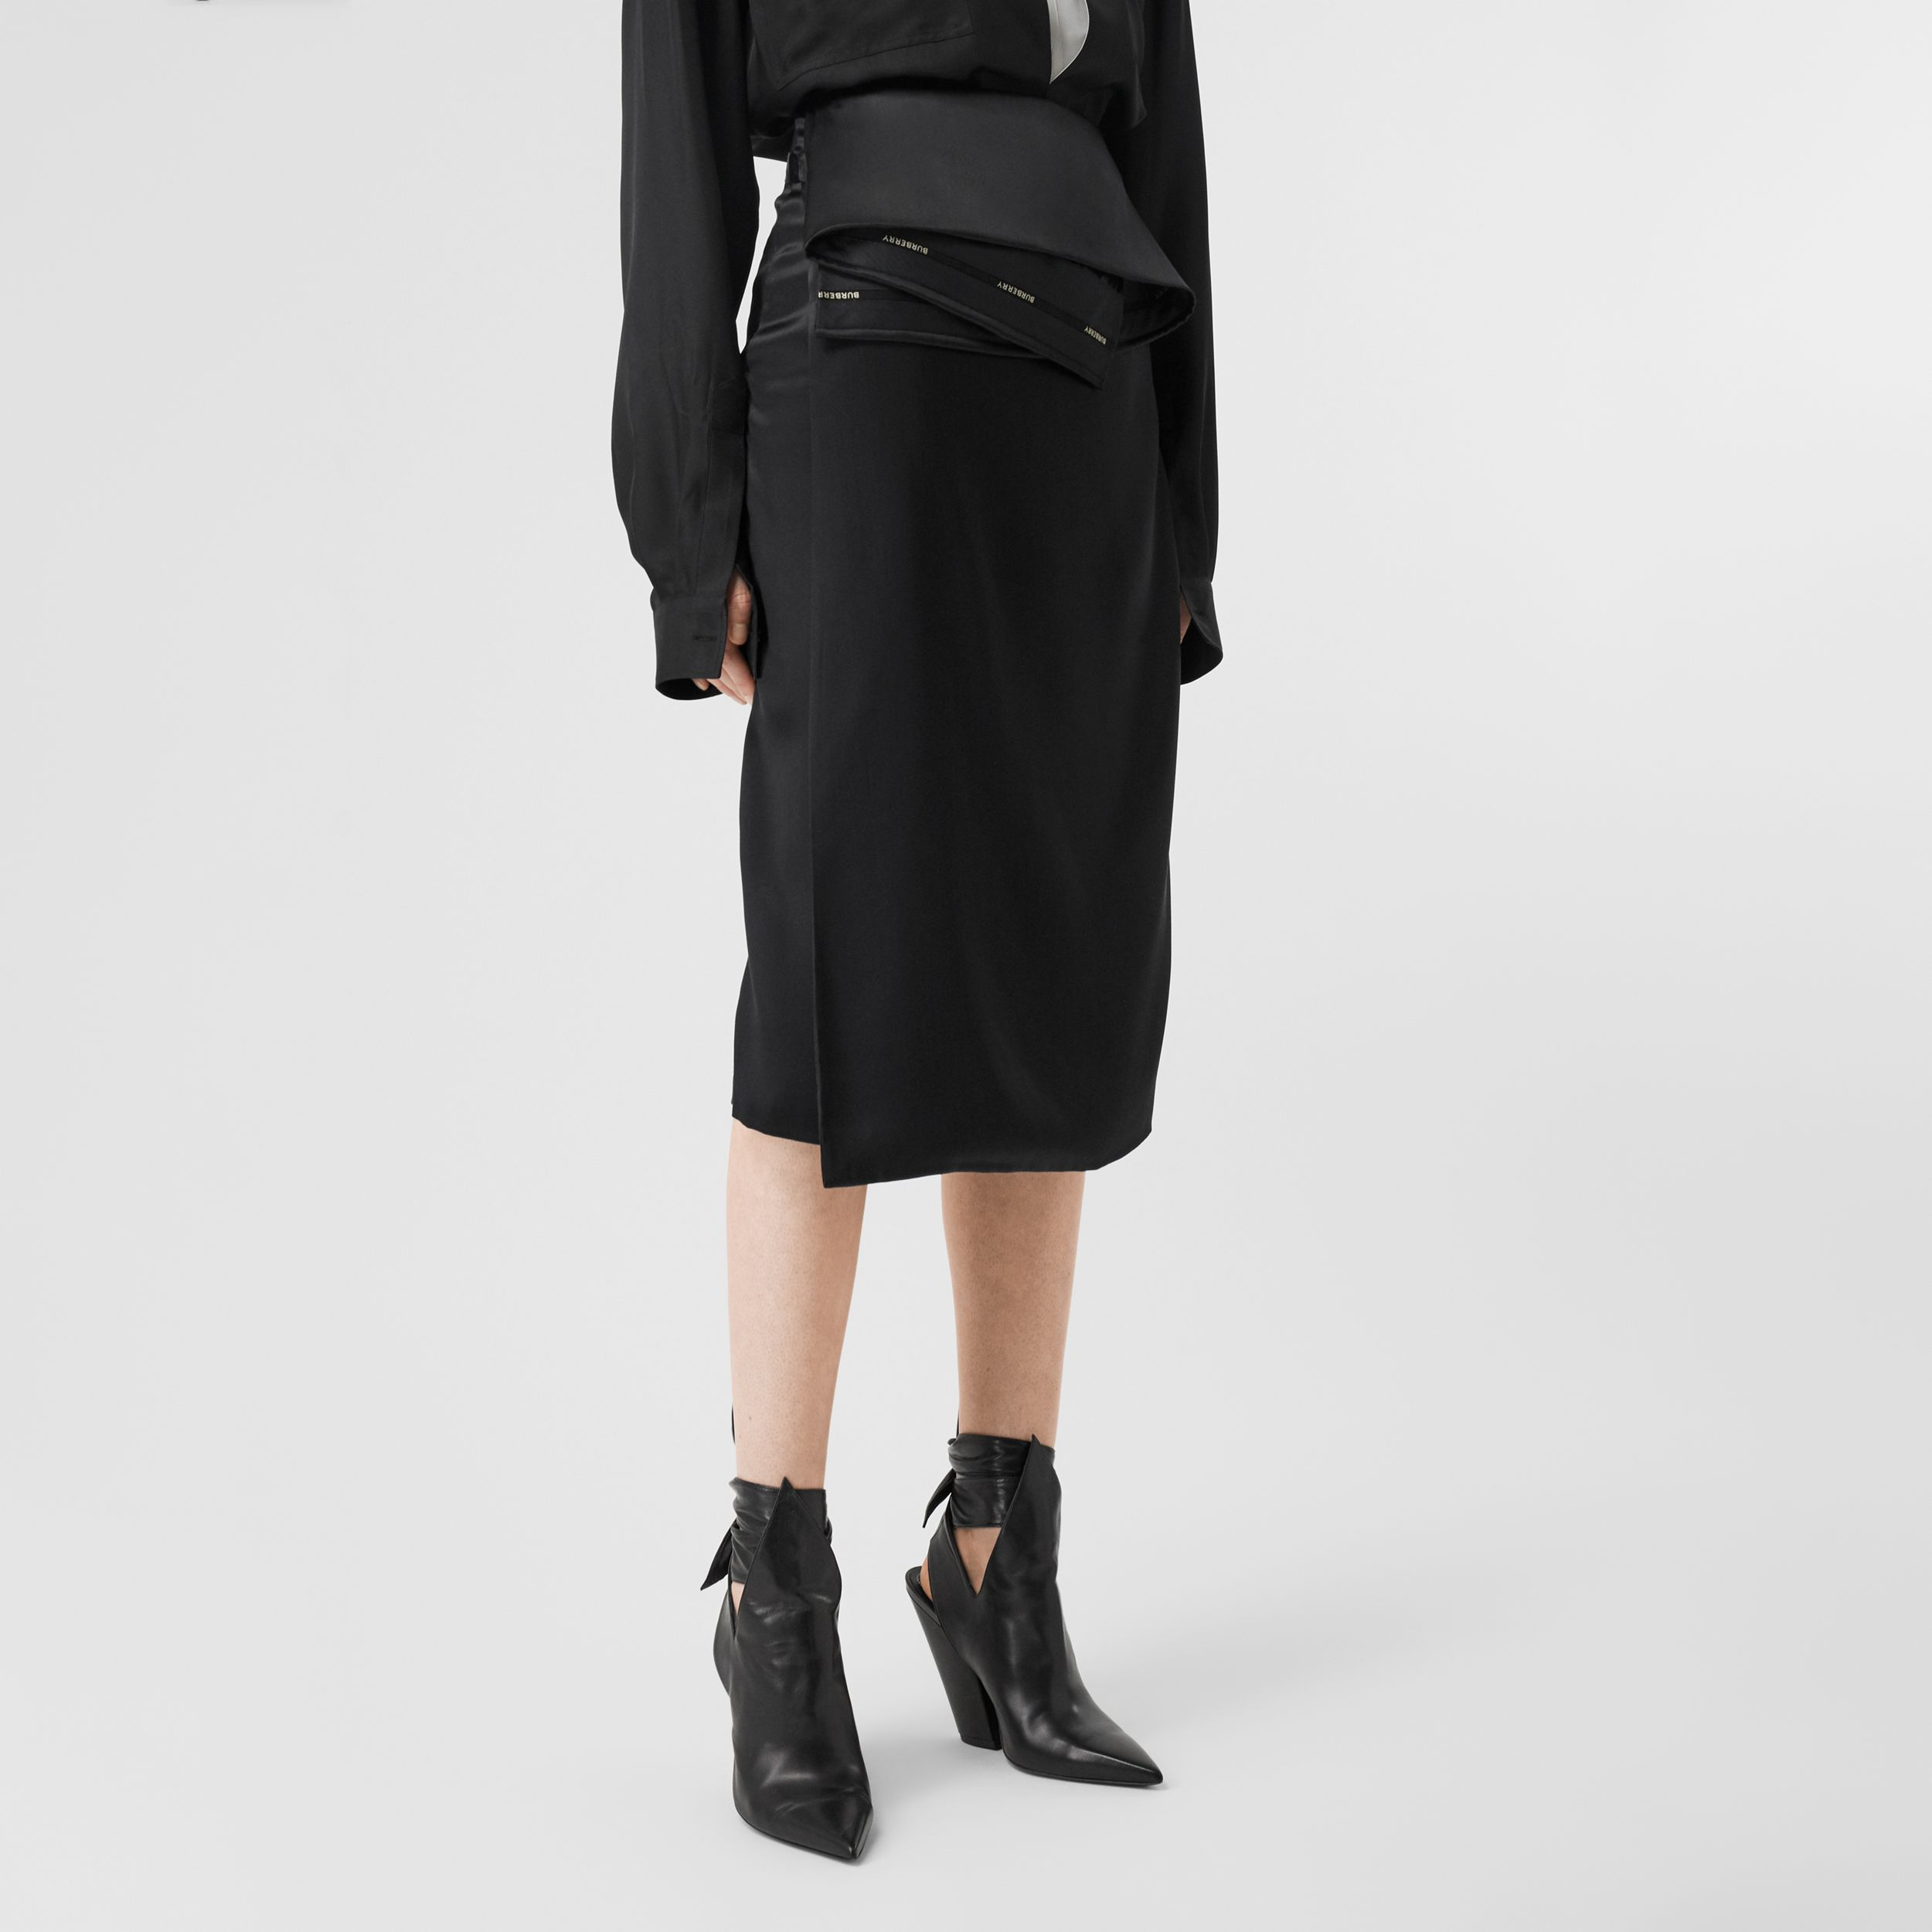 Silk Satin Foldover Skirt in Black - Women | Burberry - 4